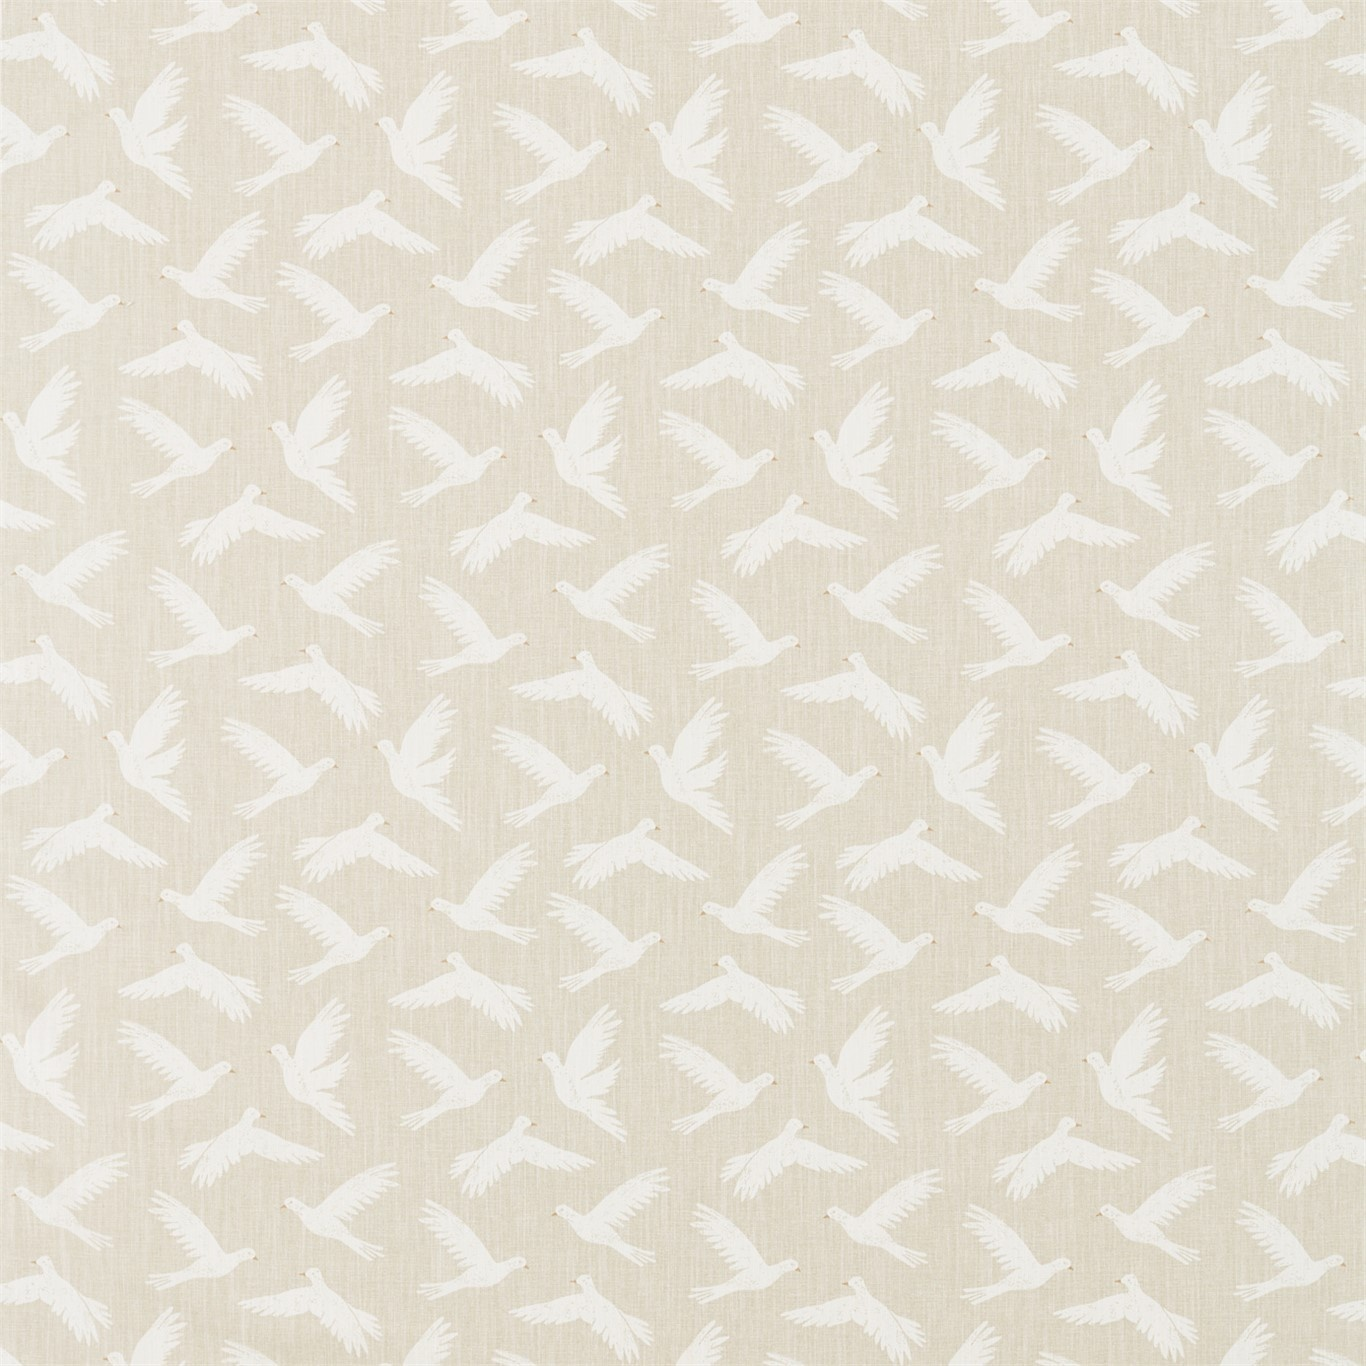 Image of Sanderson Home Paper Doves Linen Fabric 226350